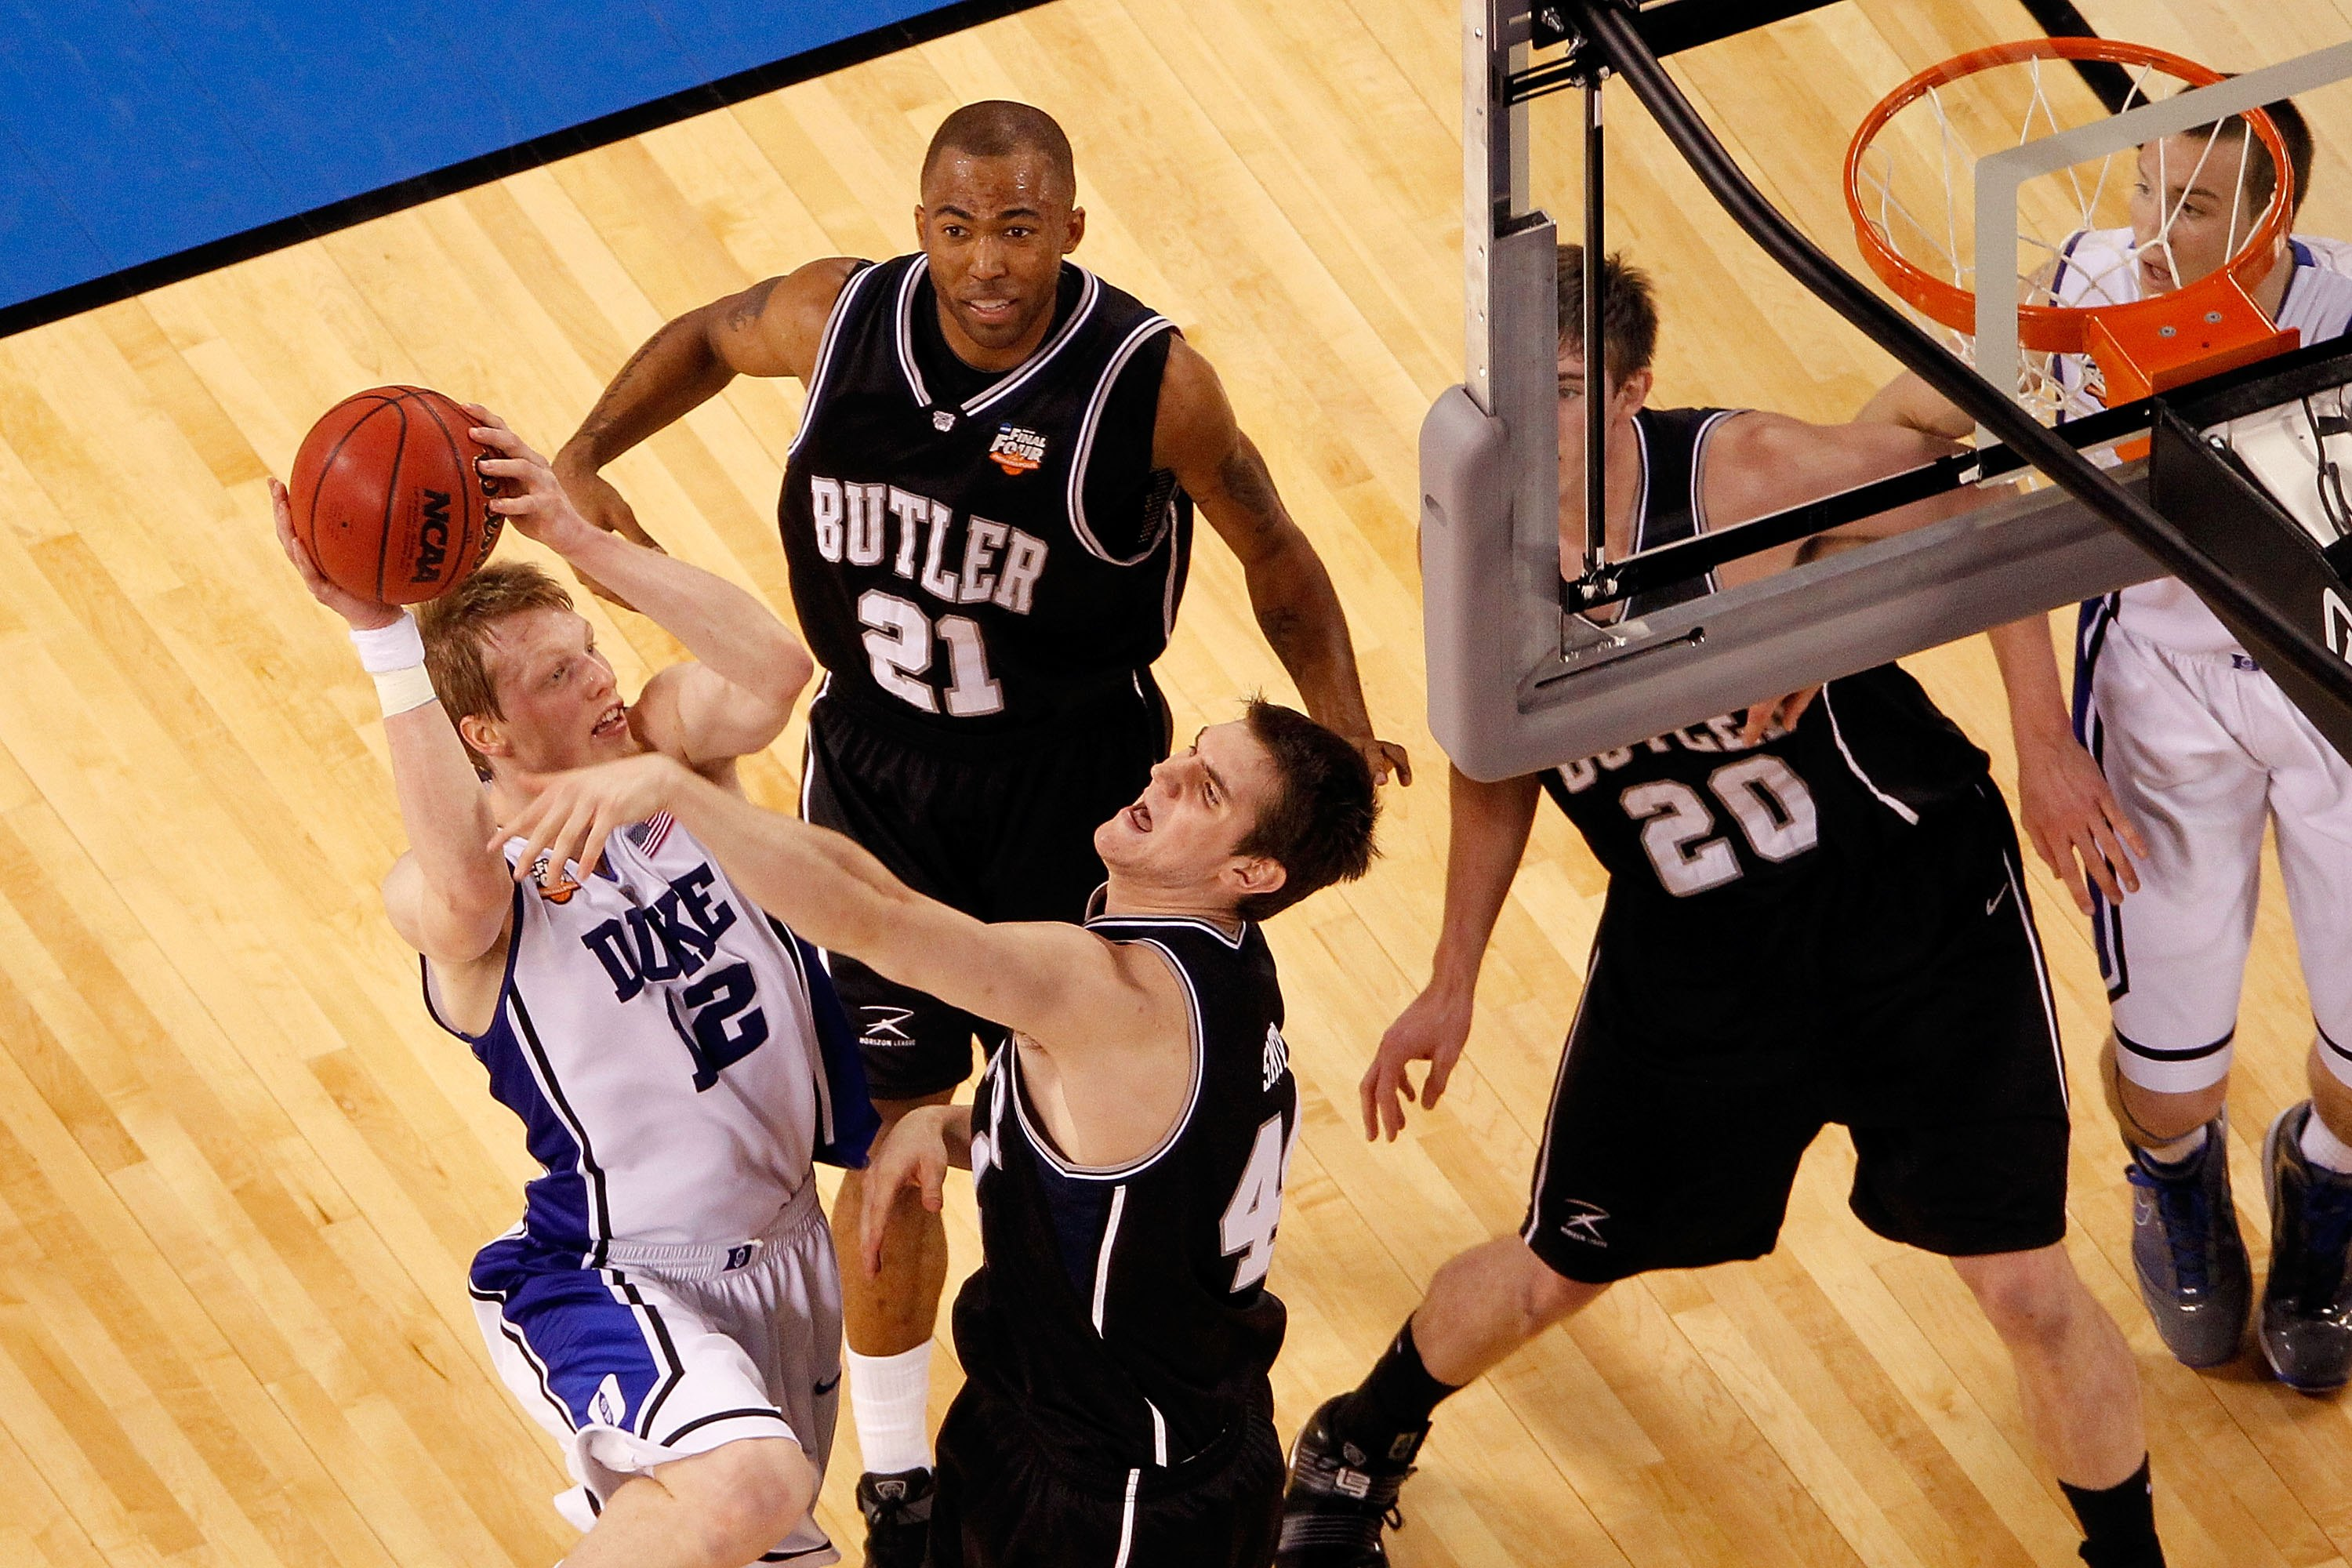 INDIANAPOLIS - APRIL 05:  Kyle Singler #12 of the Duke Blue Devils attempts a shot against the Butler Bulldogs during the 2010 NCAA Division I Men's Basketball National Championship game at Lucas Oil Stadium on April 5, 2010 in Indianapolis, Indiana.  (Ph